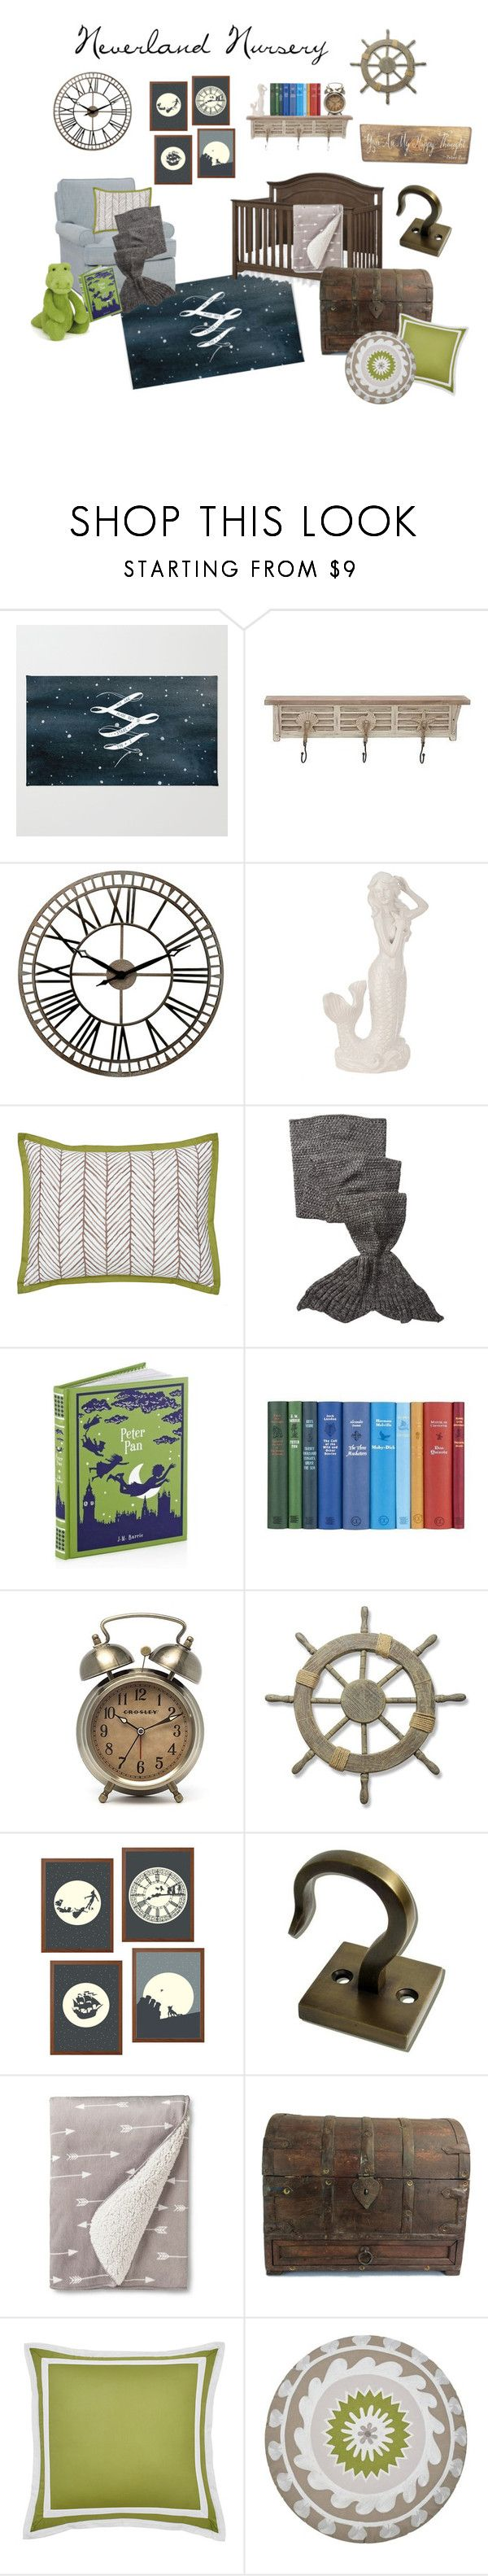 """""""Neverland Nursery"""" by krisannebaker on Polyvore featuring interior, interiors, interior design, home, home decor, interior decorating, Chaney, WestPoint Home, Hodges and Eddie Bauer"""